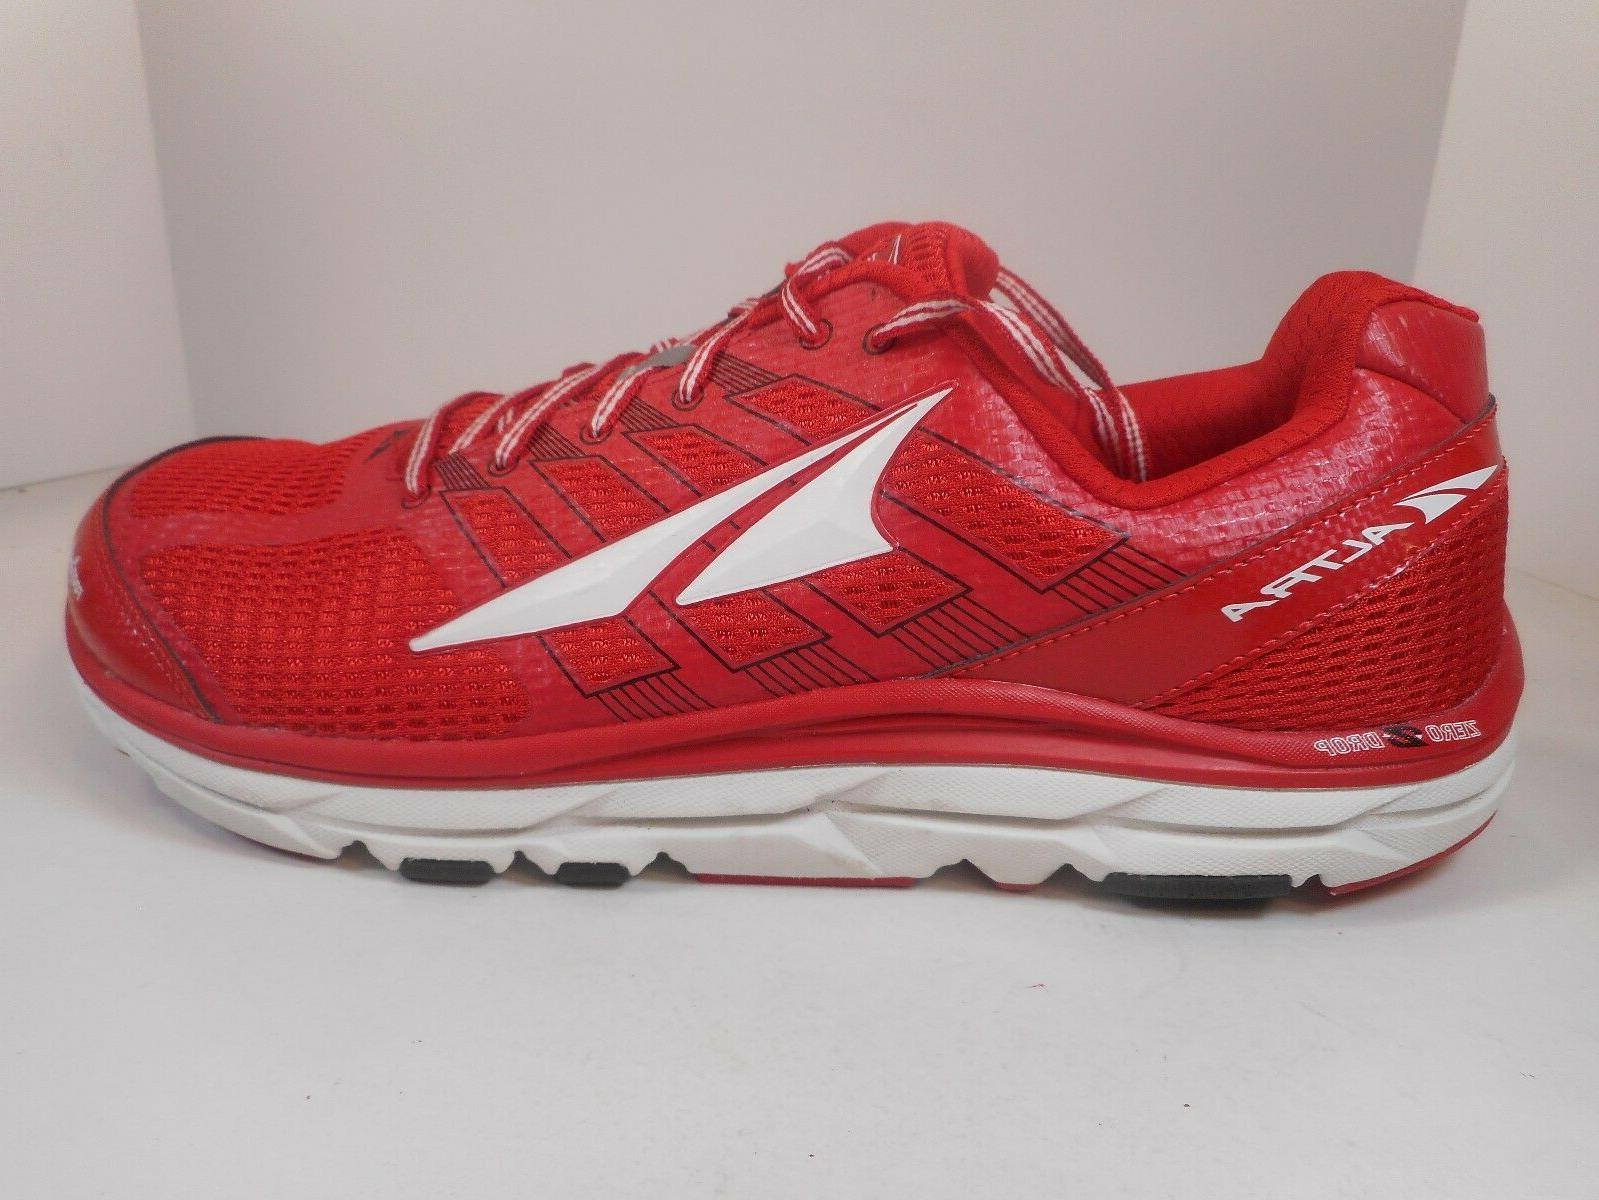 provision men s running shoes red us